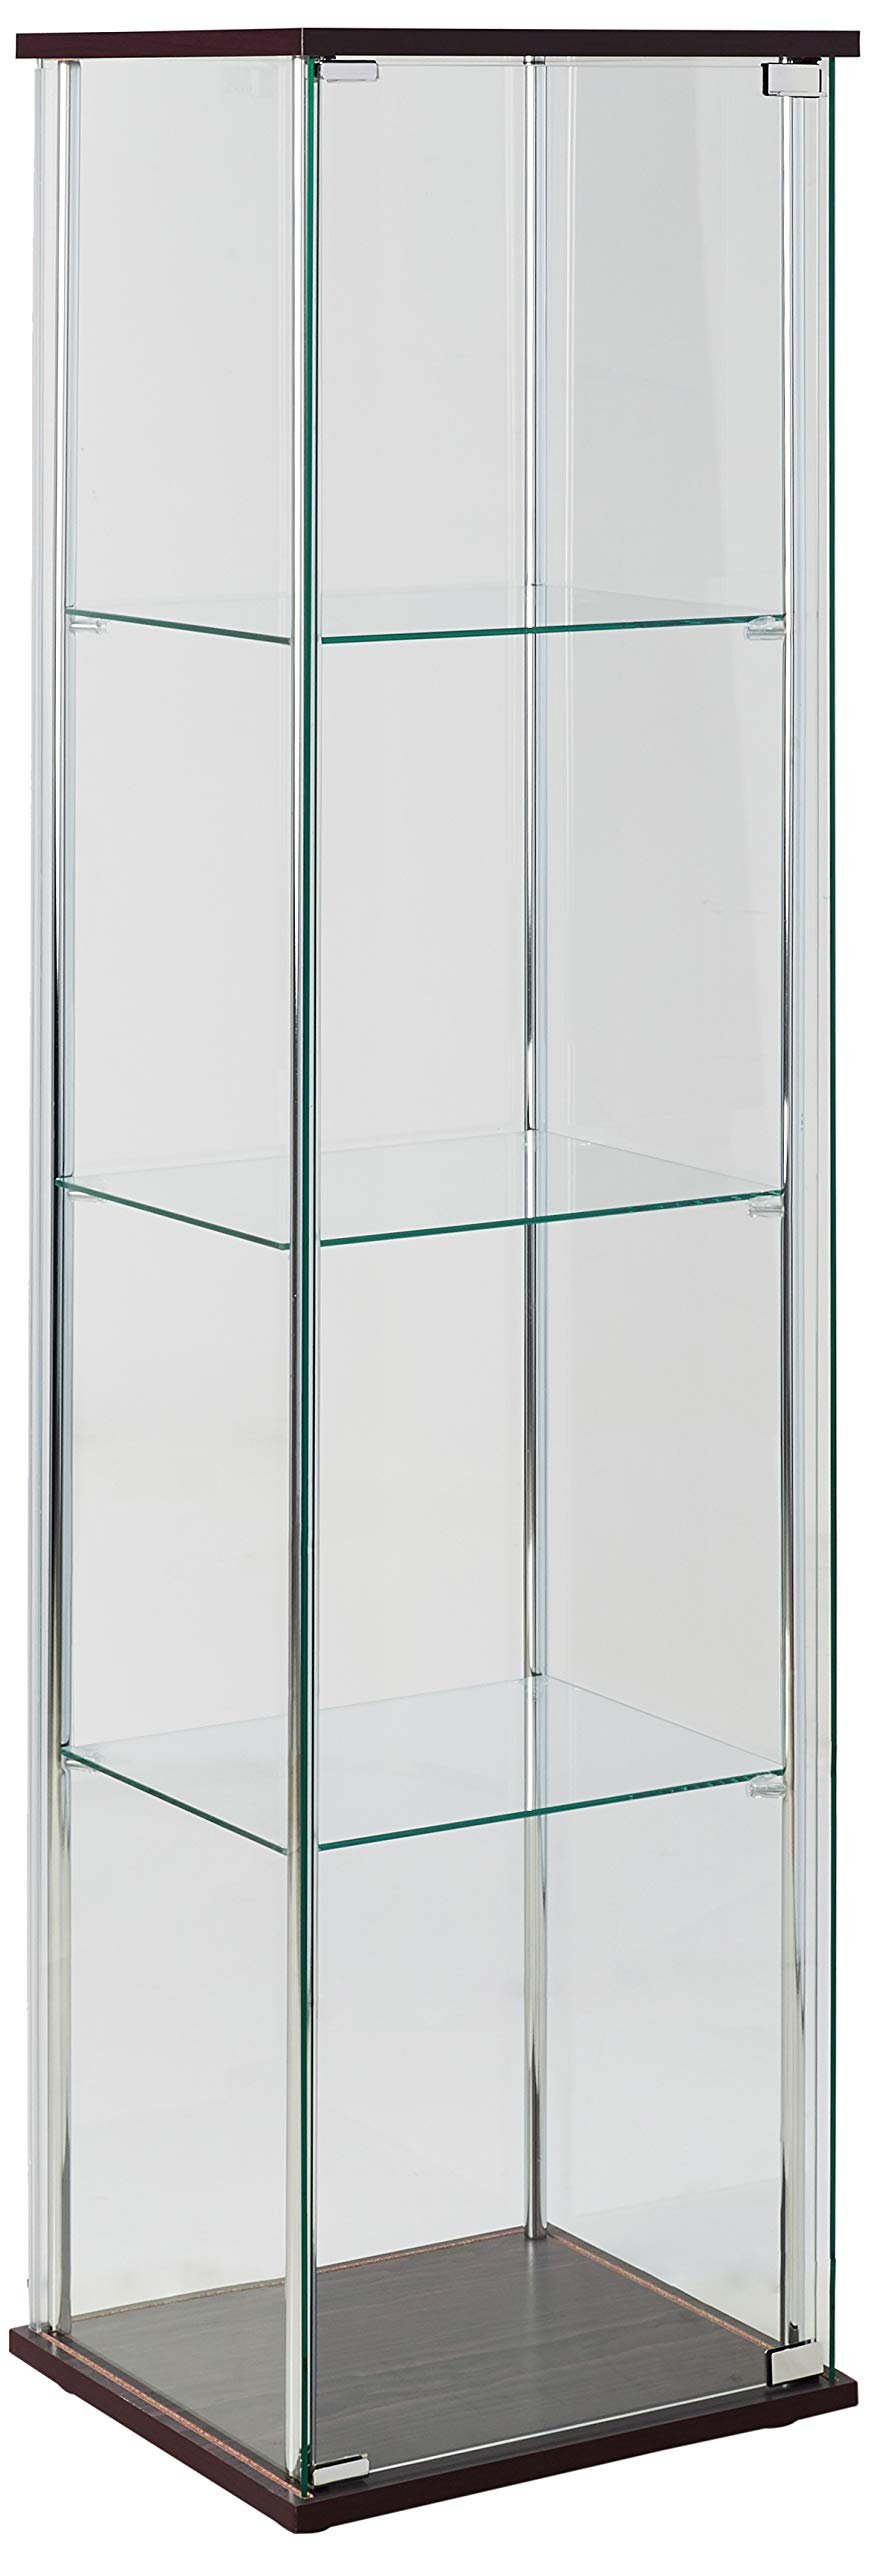 4-Shelf Glass Curio Cabinet Cappuccino and Clear by Coaster Home Furnishings